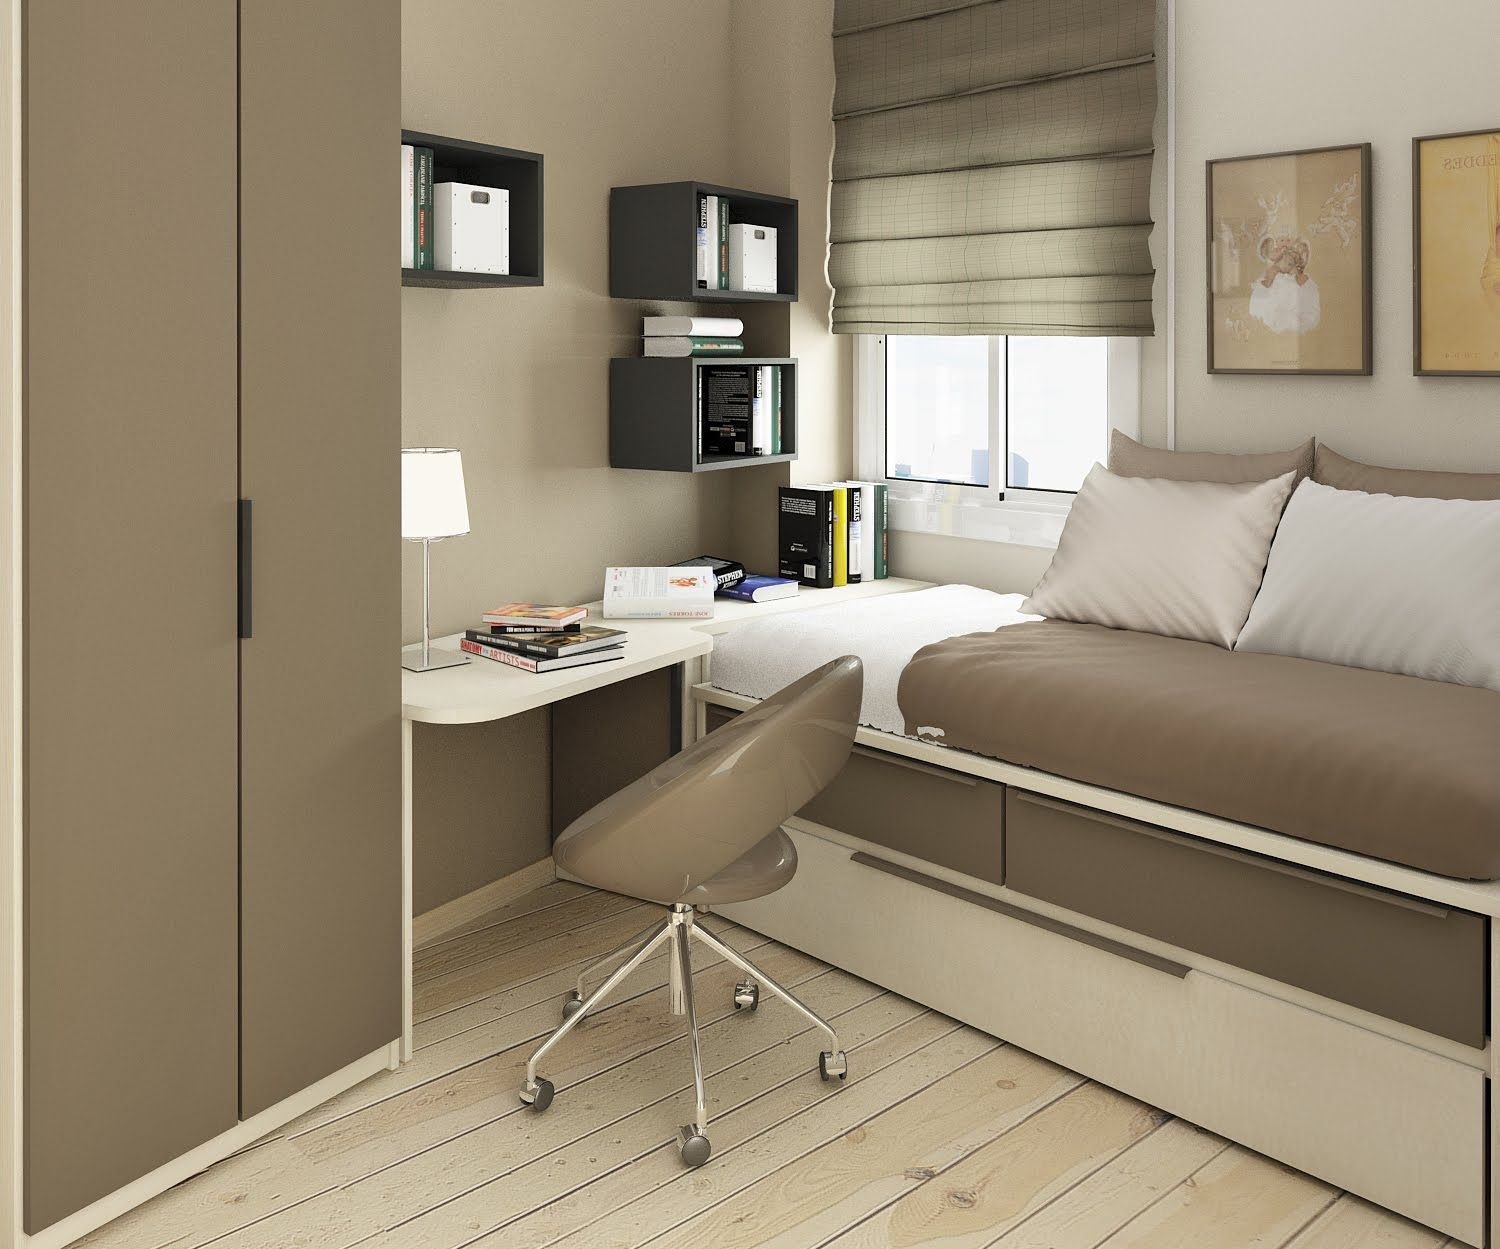 Simple Interior Design Ideas For Small Bedroom. Simple Interior Design Ideas For Small Bedroom   Small rooms